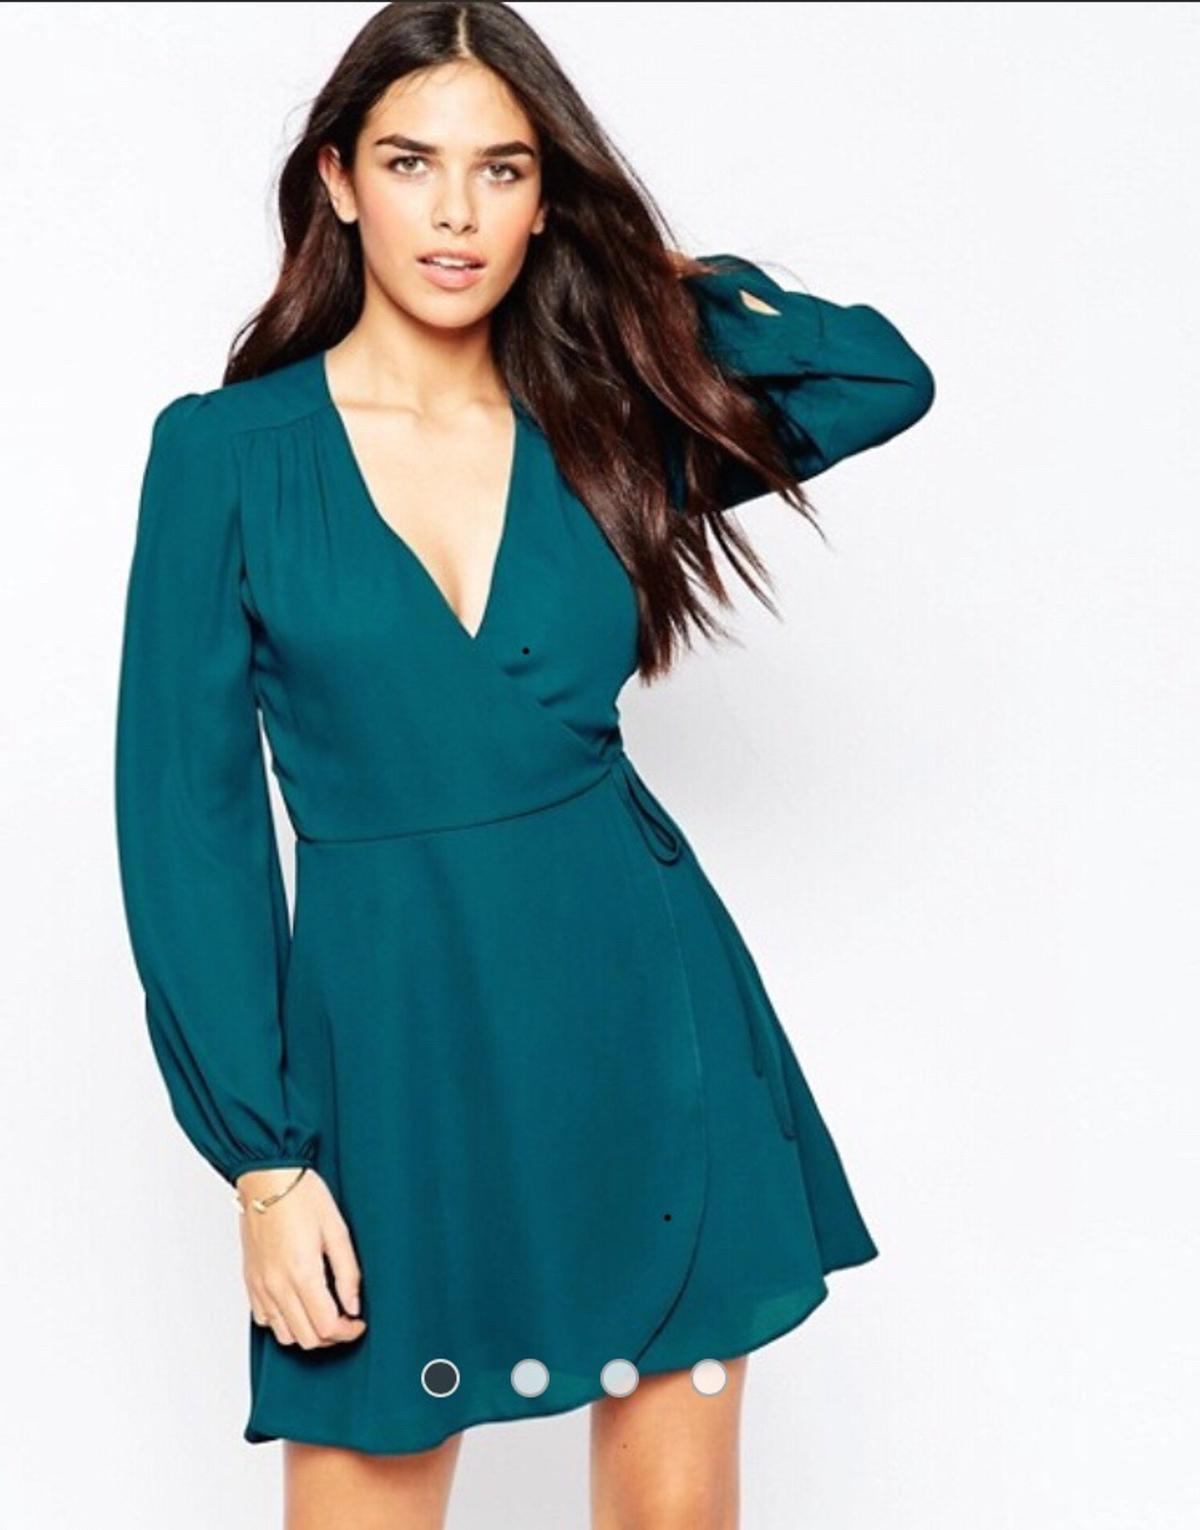 679f887ab76c9 Asos mini wrap dress with blouson sleeves in NR34 Waveney for £15.00 ...